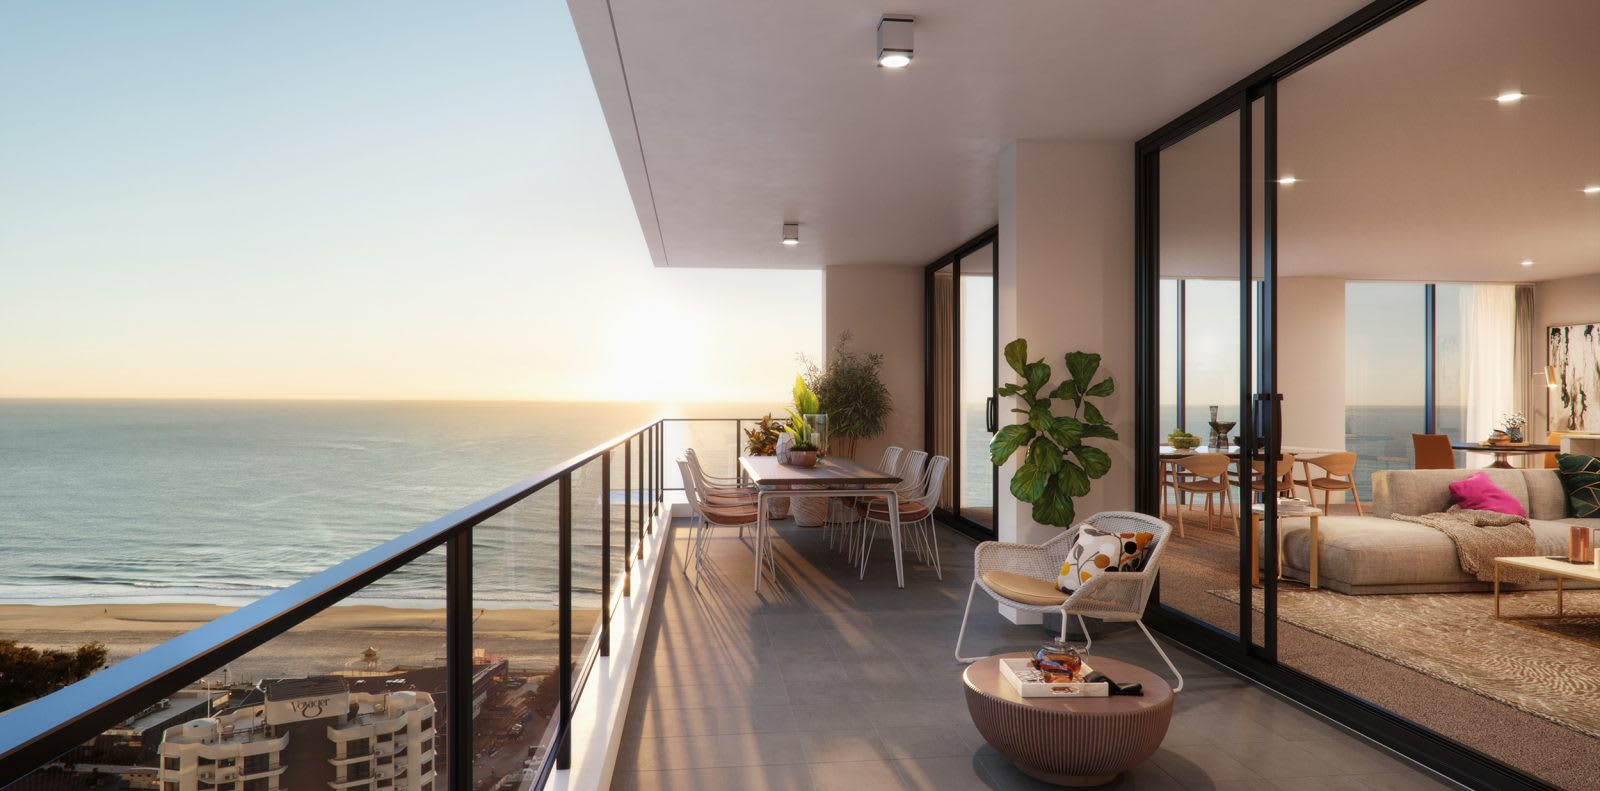 5 apartments for the professional couple in Queensland's Broadbeach